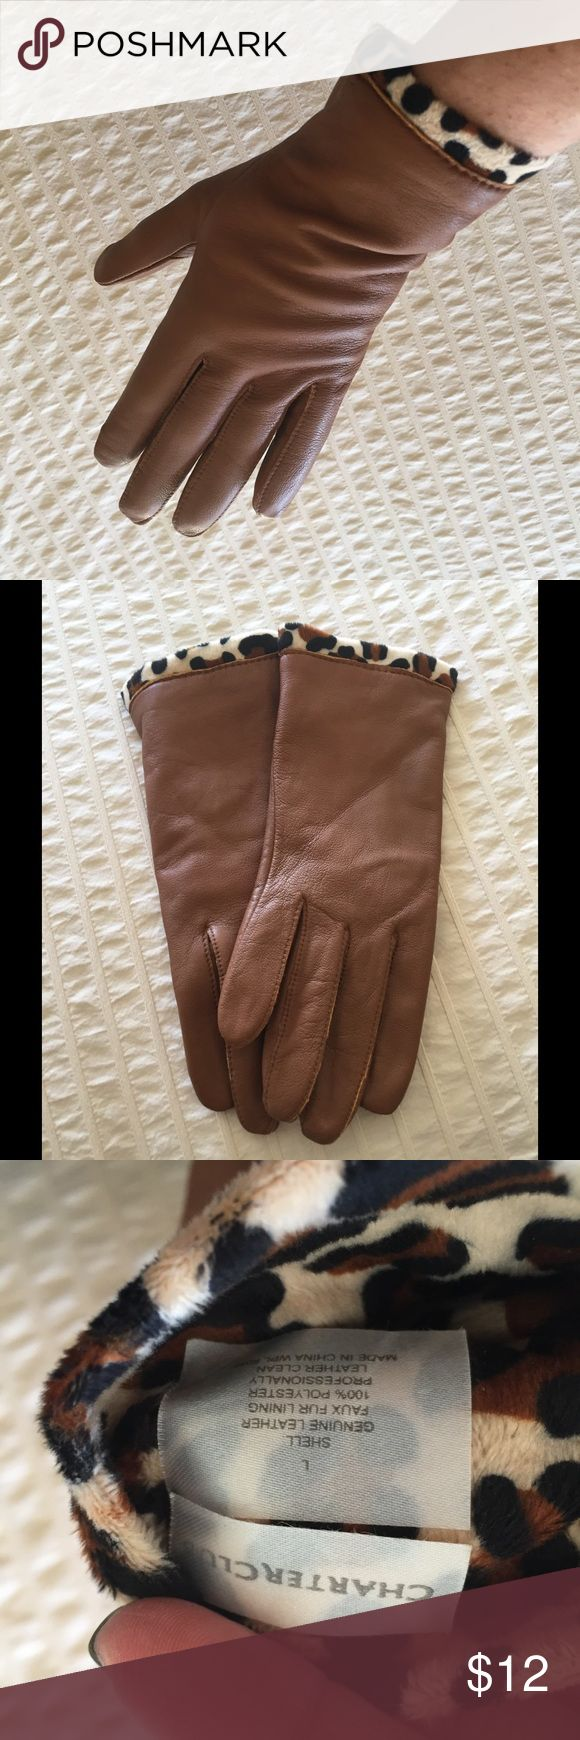 Brown leather gloves with leopard trim Brand new never worn camel colored leather gloves with leopard trim. Brand is charter club. Size large. Very comfy Charter Club Accessories Gloves & Mittens